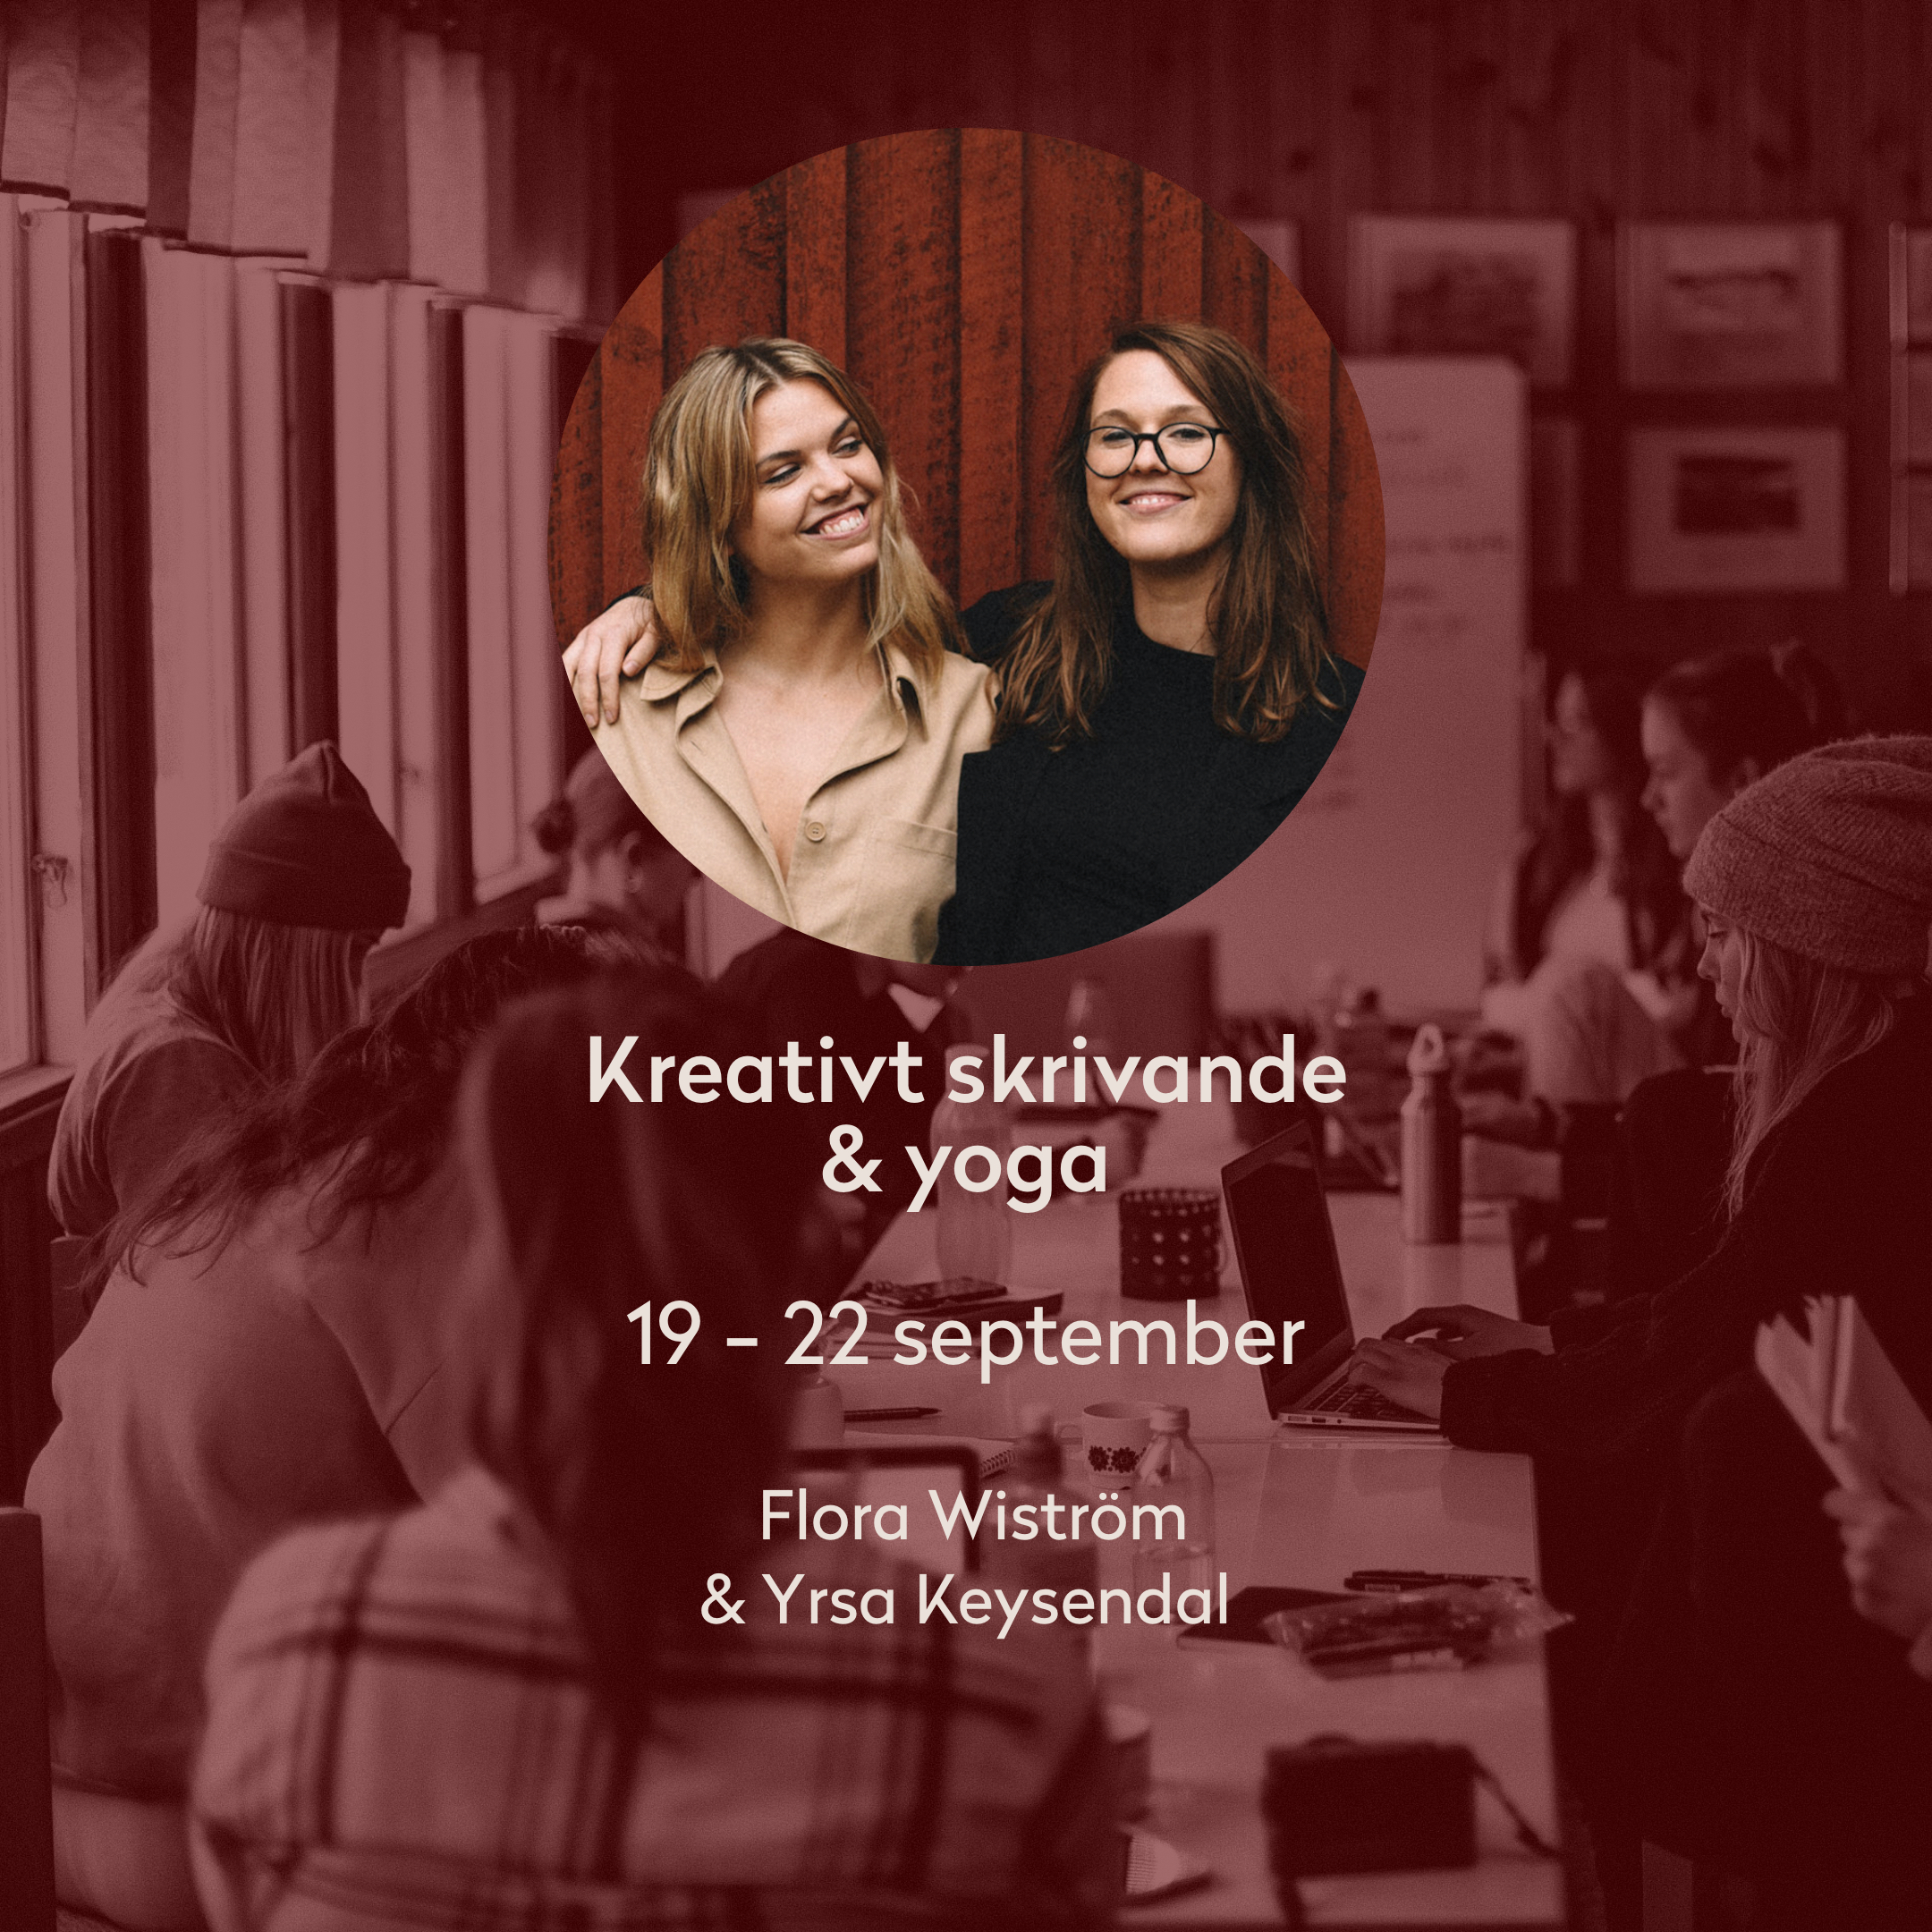 Creative writing & yoga - Sept - Are you curious about exploring your writing? For the 5th time, we invite our 2 friends (and authors) Yrsa Keysendal and Flora Wiström, to co-host a creative retreat where we mix creative writing with yoga and meditation.Find more info here (in Swedish)